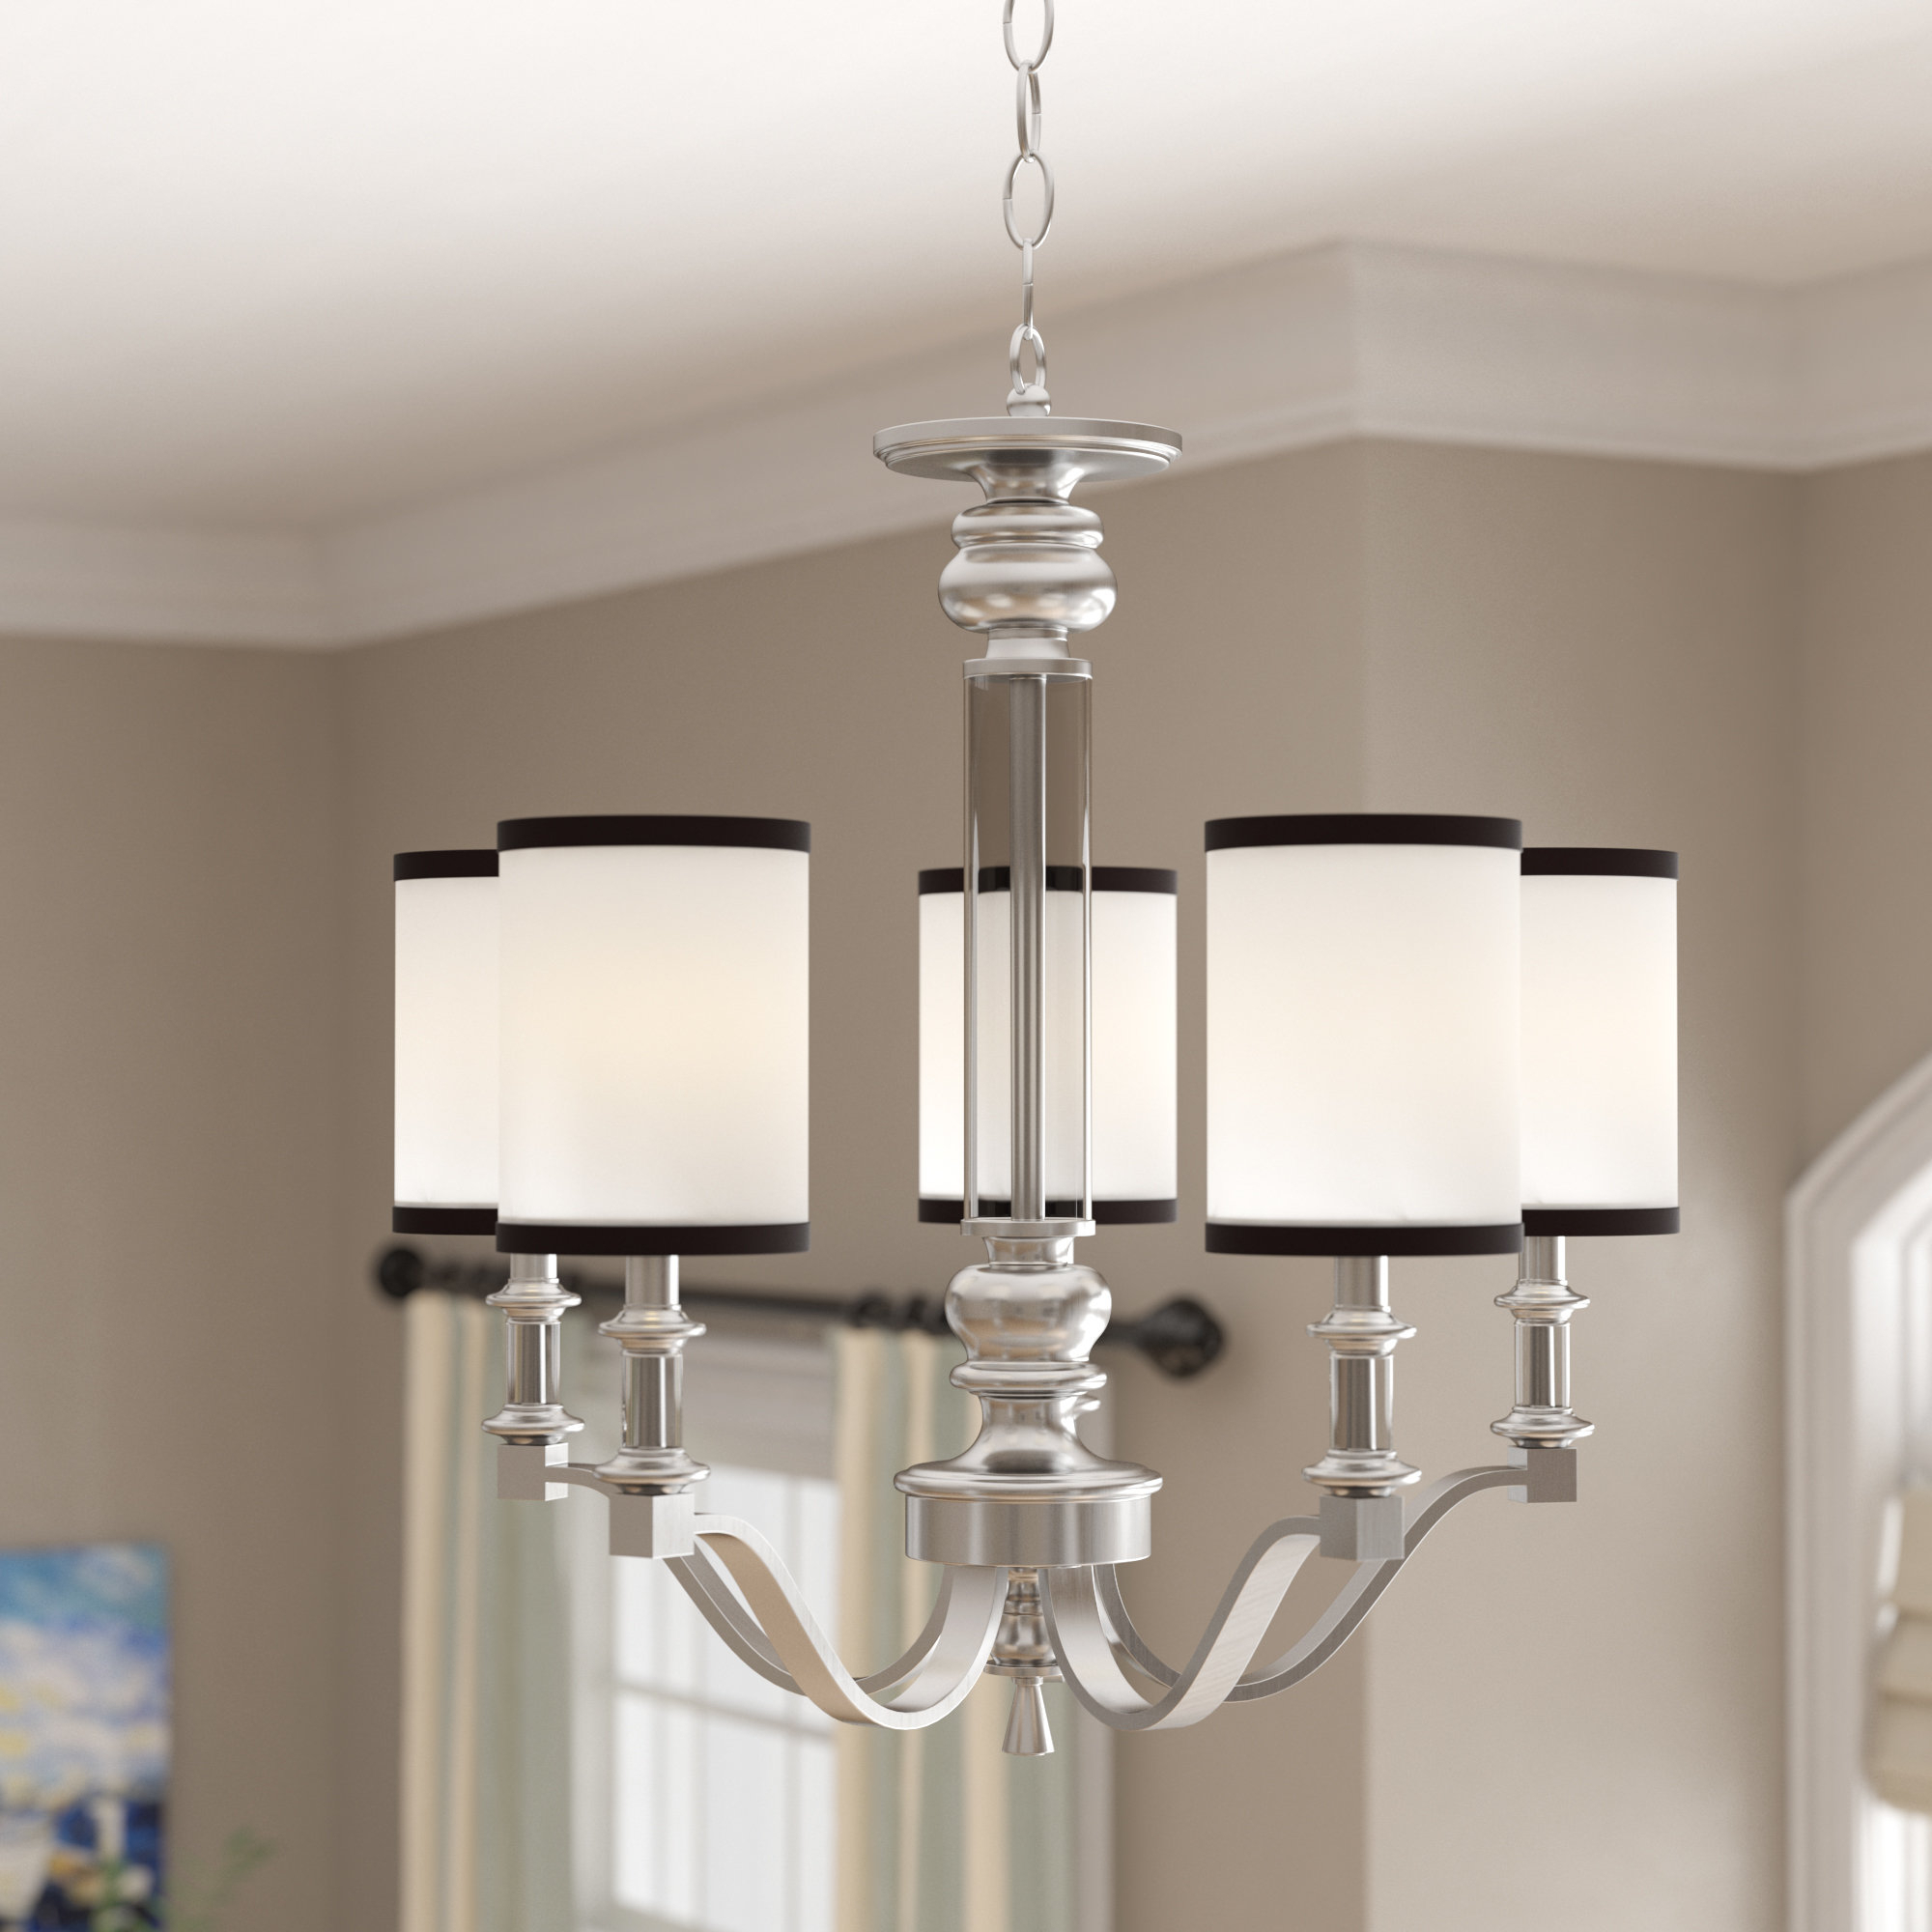 Crofoot 5 Light Shaded Chandeliers With 2020 Pfeffer 5 Light Shaded Chandelier (View 8 of 25)